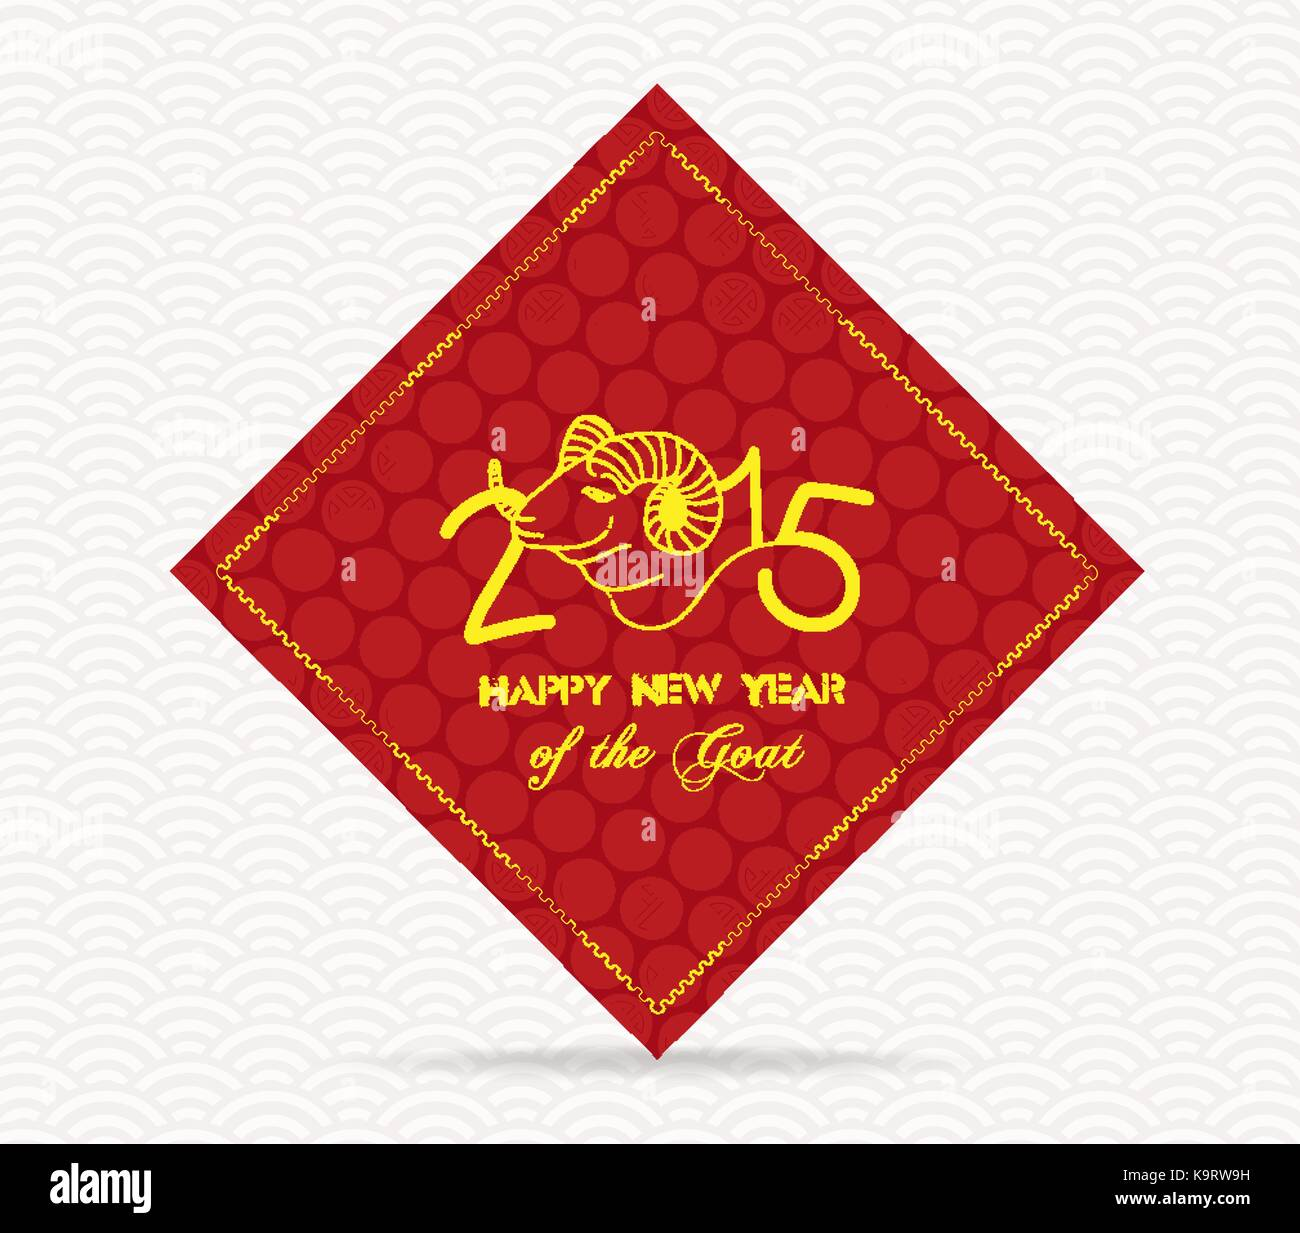 Chinese New Year of the goat greeting card background - Stock Image